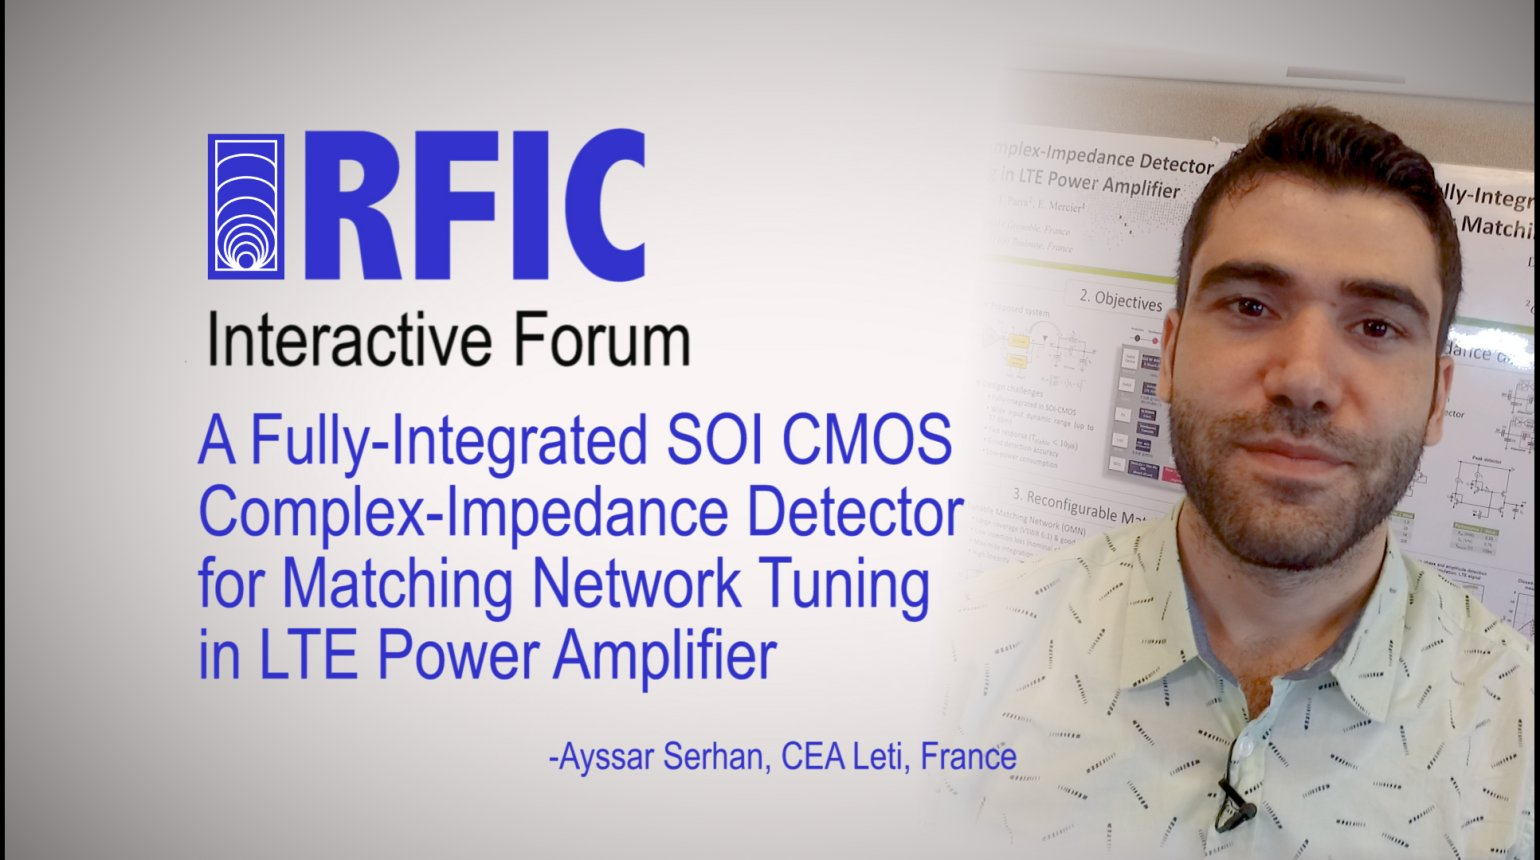 A Fully-Integrated SOI CMOS Complex-Impedance Detector for Matching Network Tuning in LTE Power Amplifier: RFIC Interactive Forum